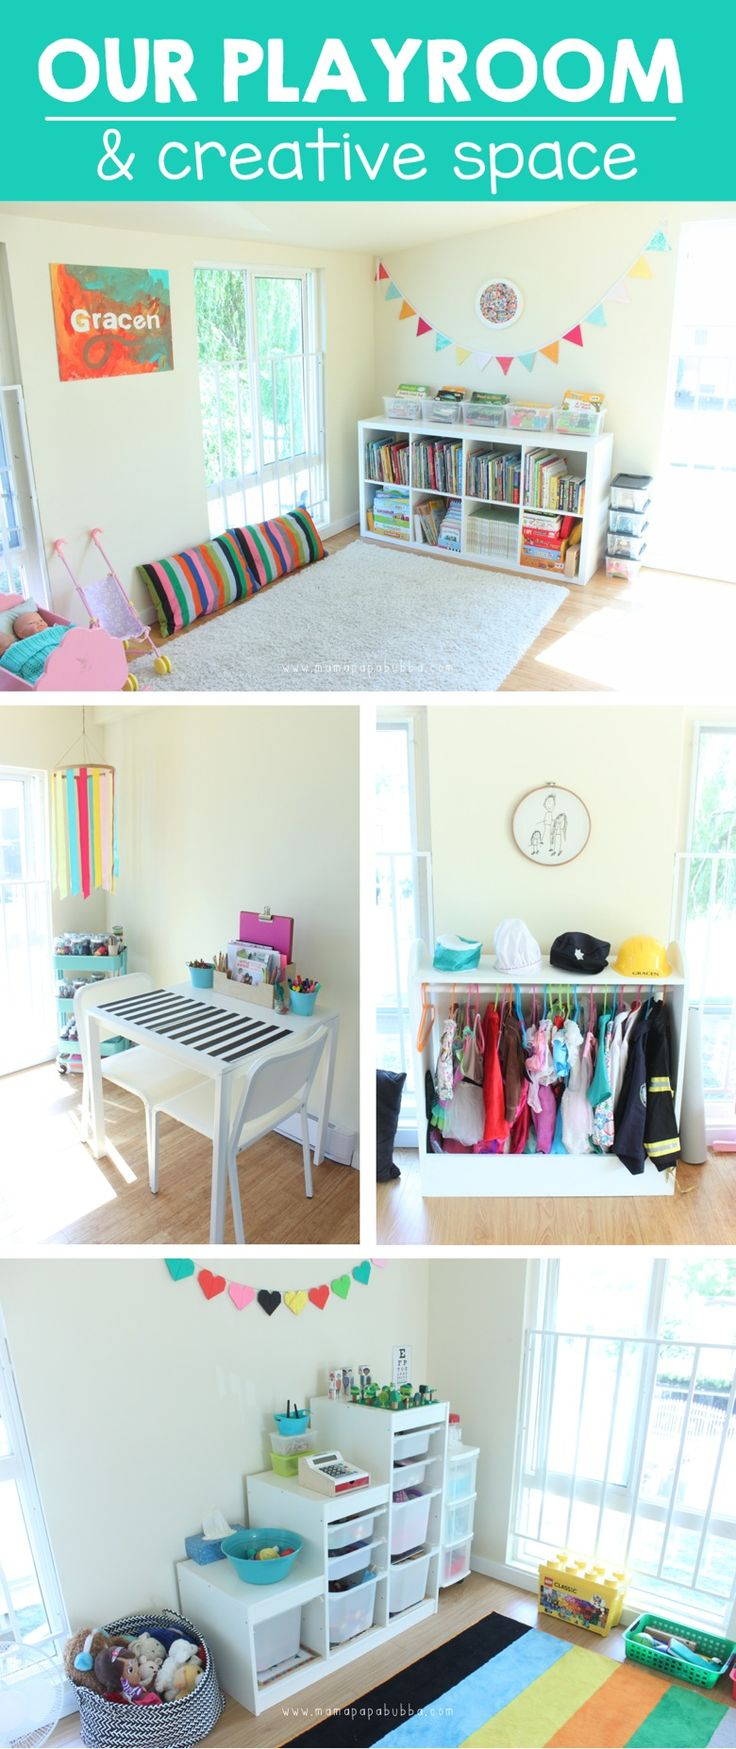 Our Playroom & Creative Space | Mama.Papa.Bubba.